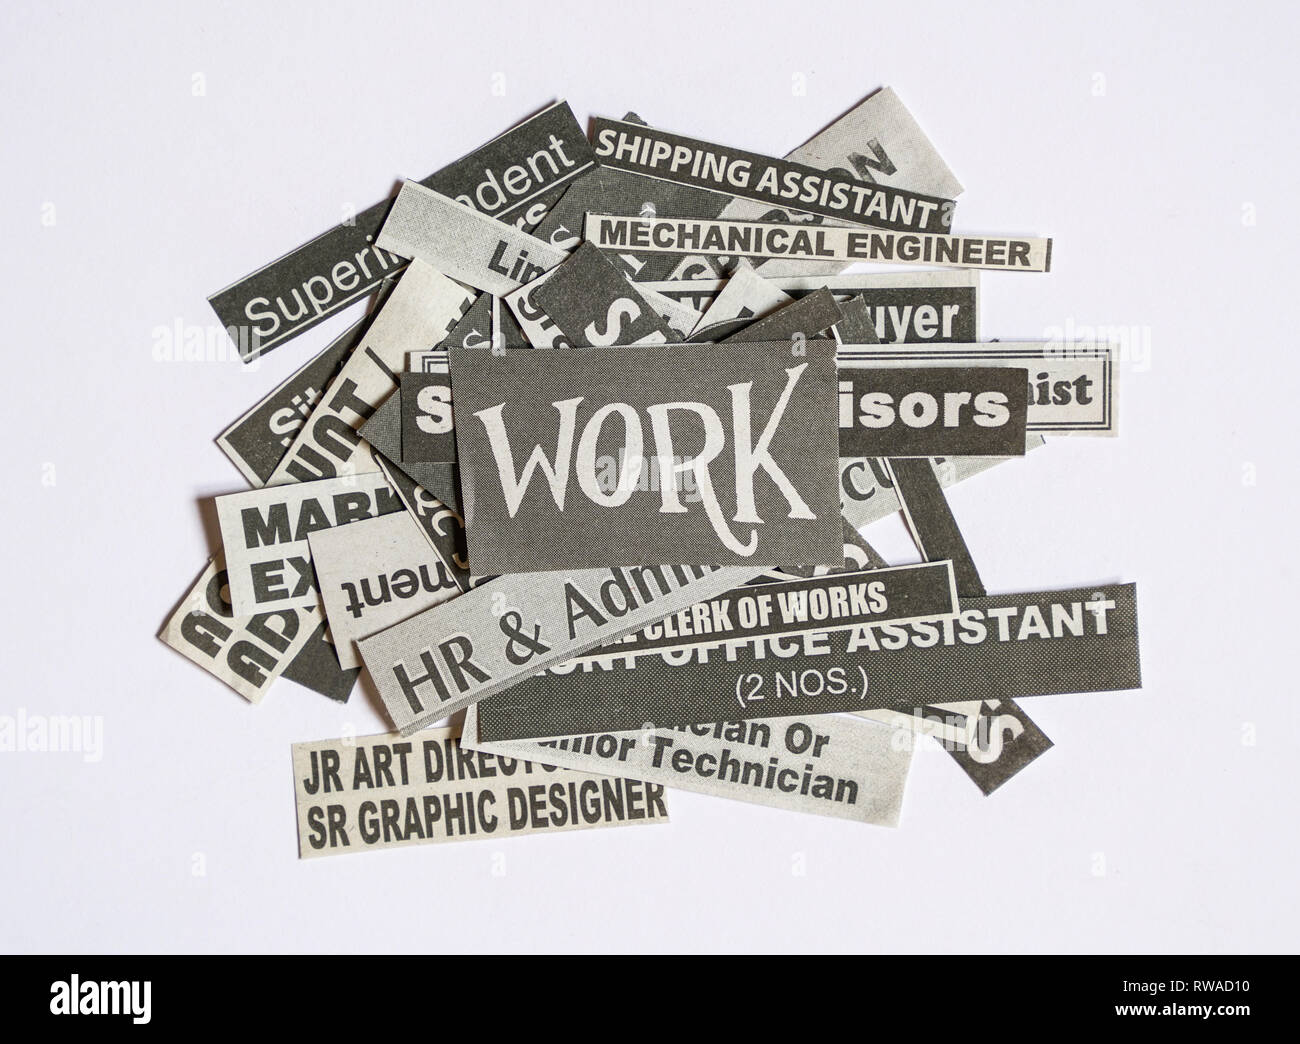 Jobs or careers concept: job titles or occupations cut off from newspaper and with Work on top of the pile - Stock Image